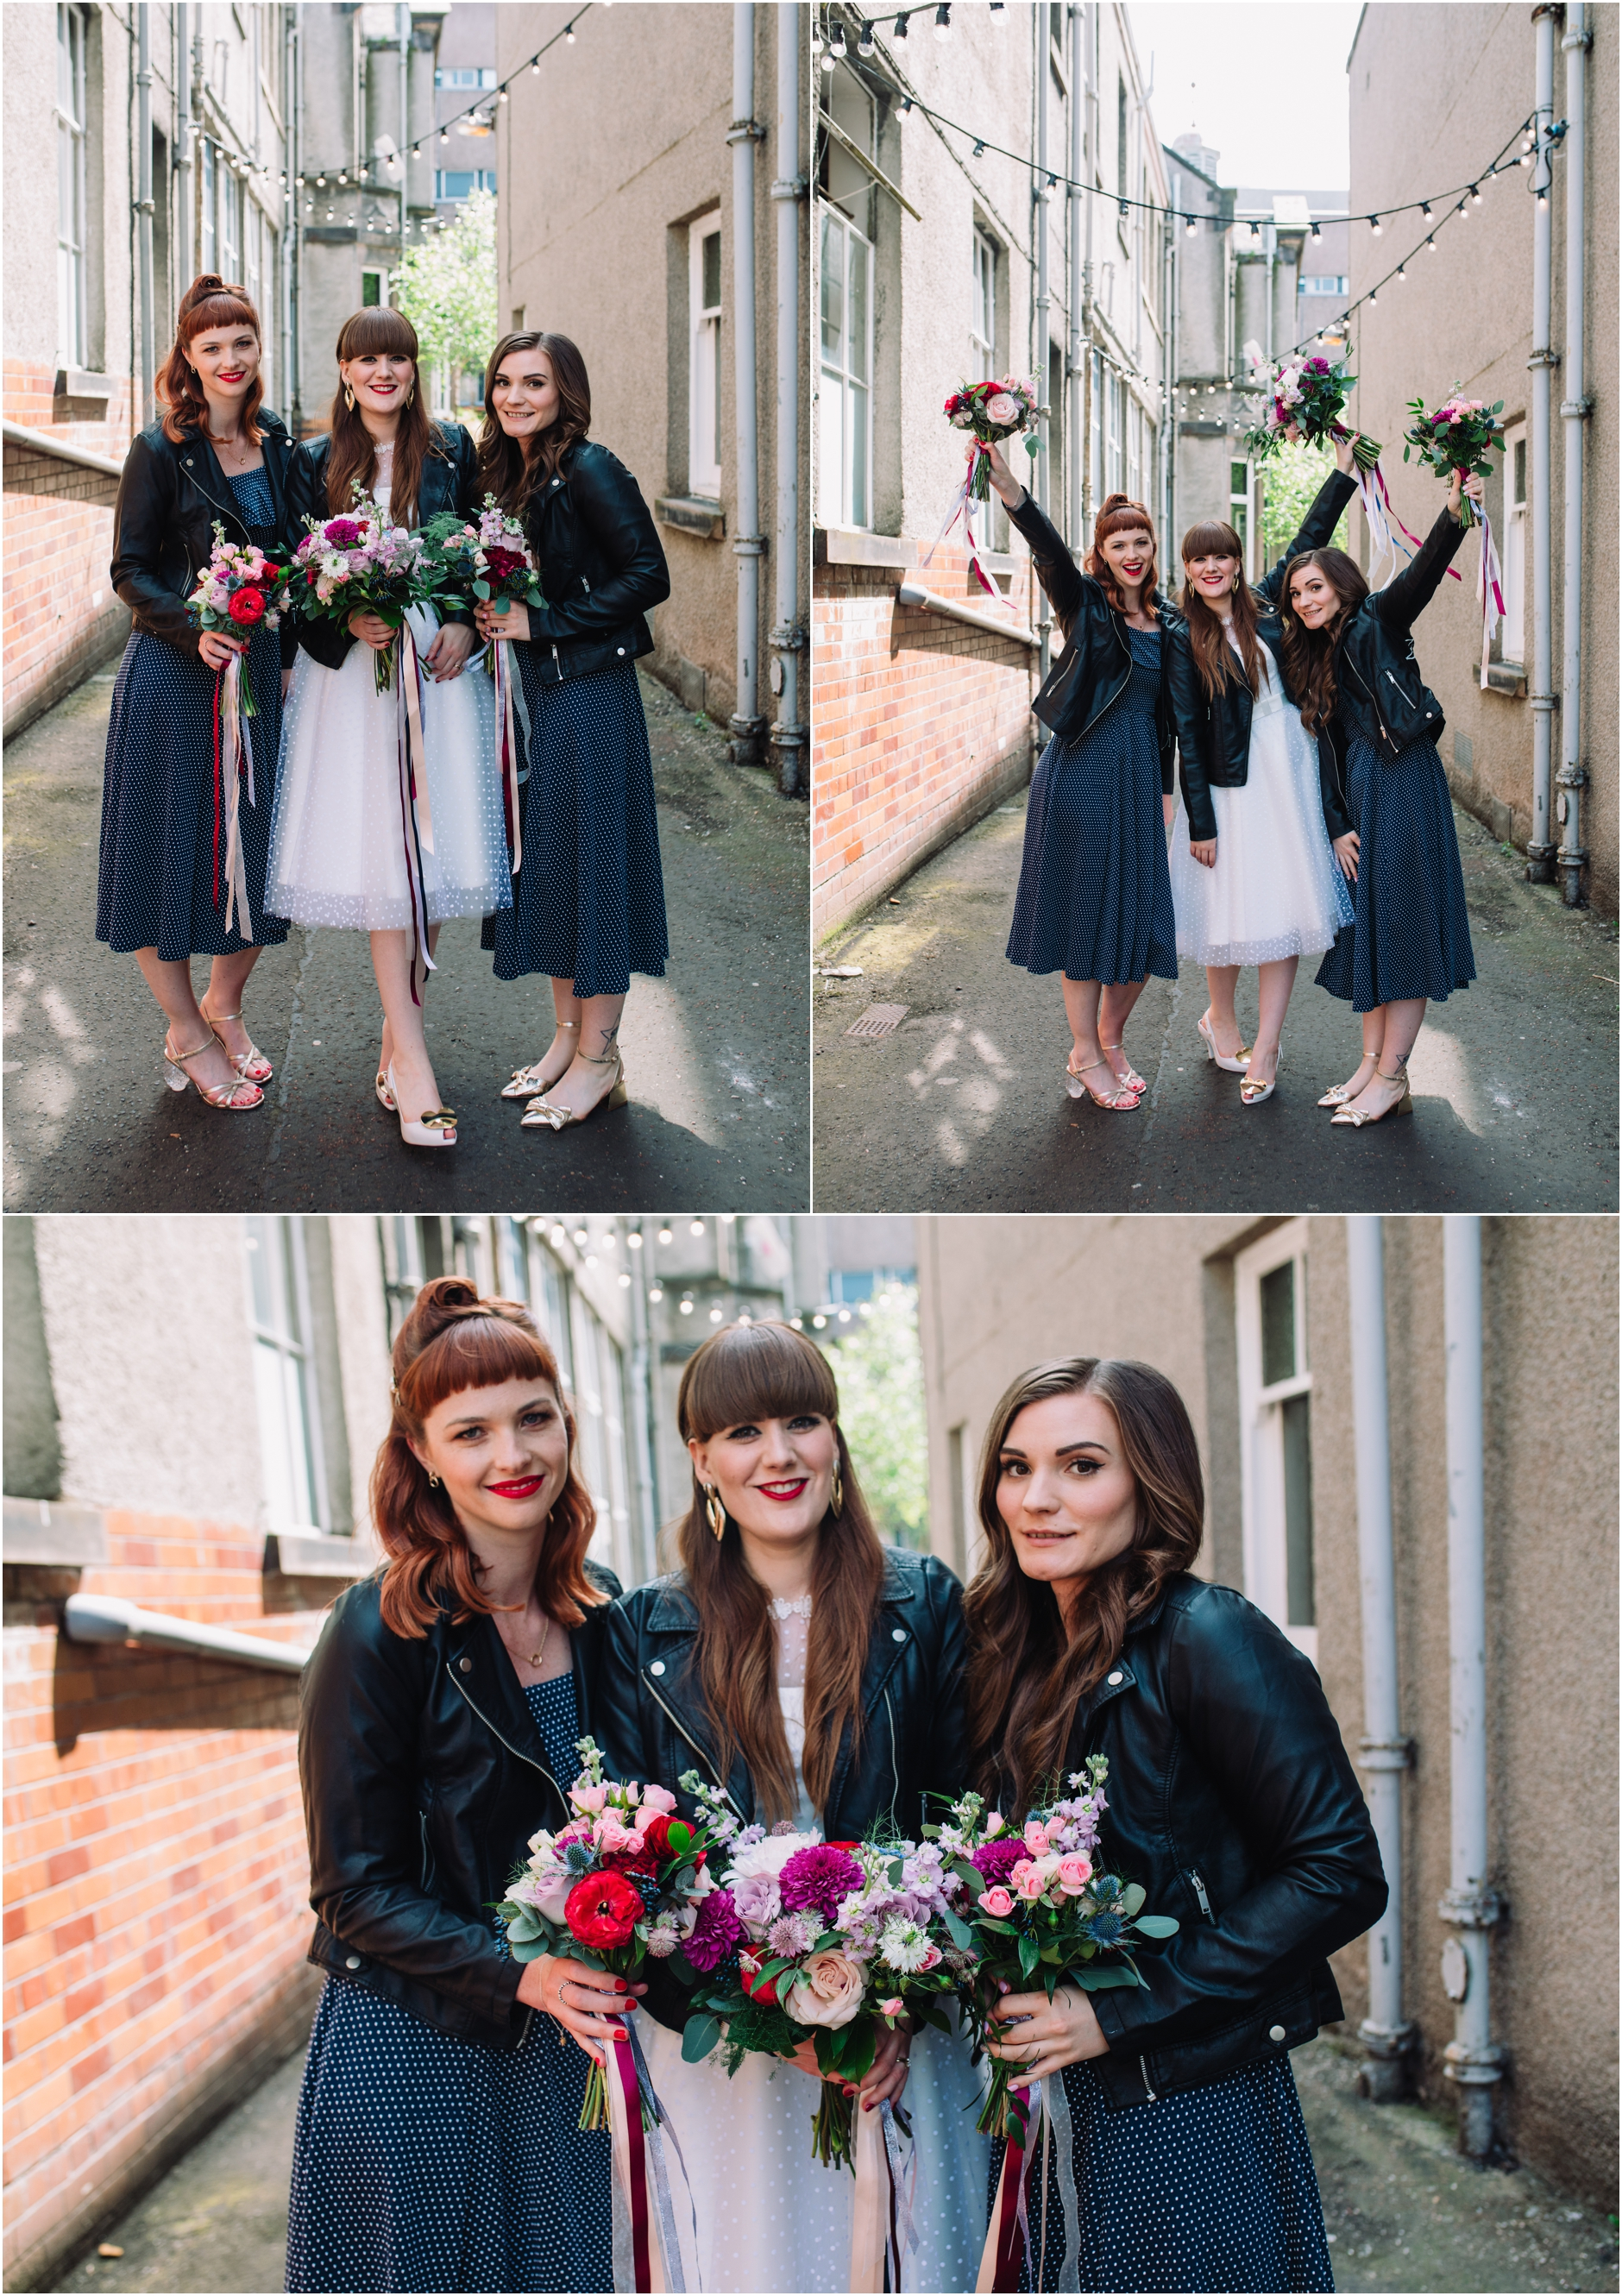 bride and bridesmaids wearing 50s style dresses and leather jackets